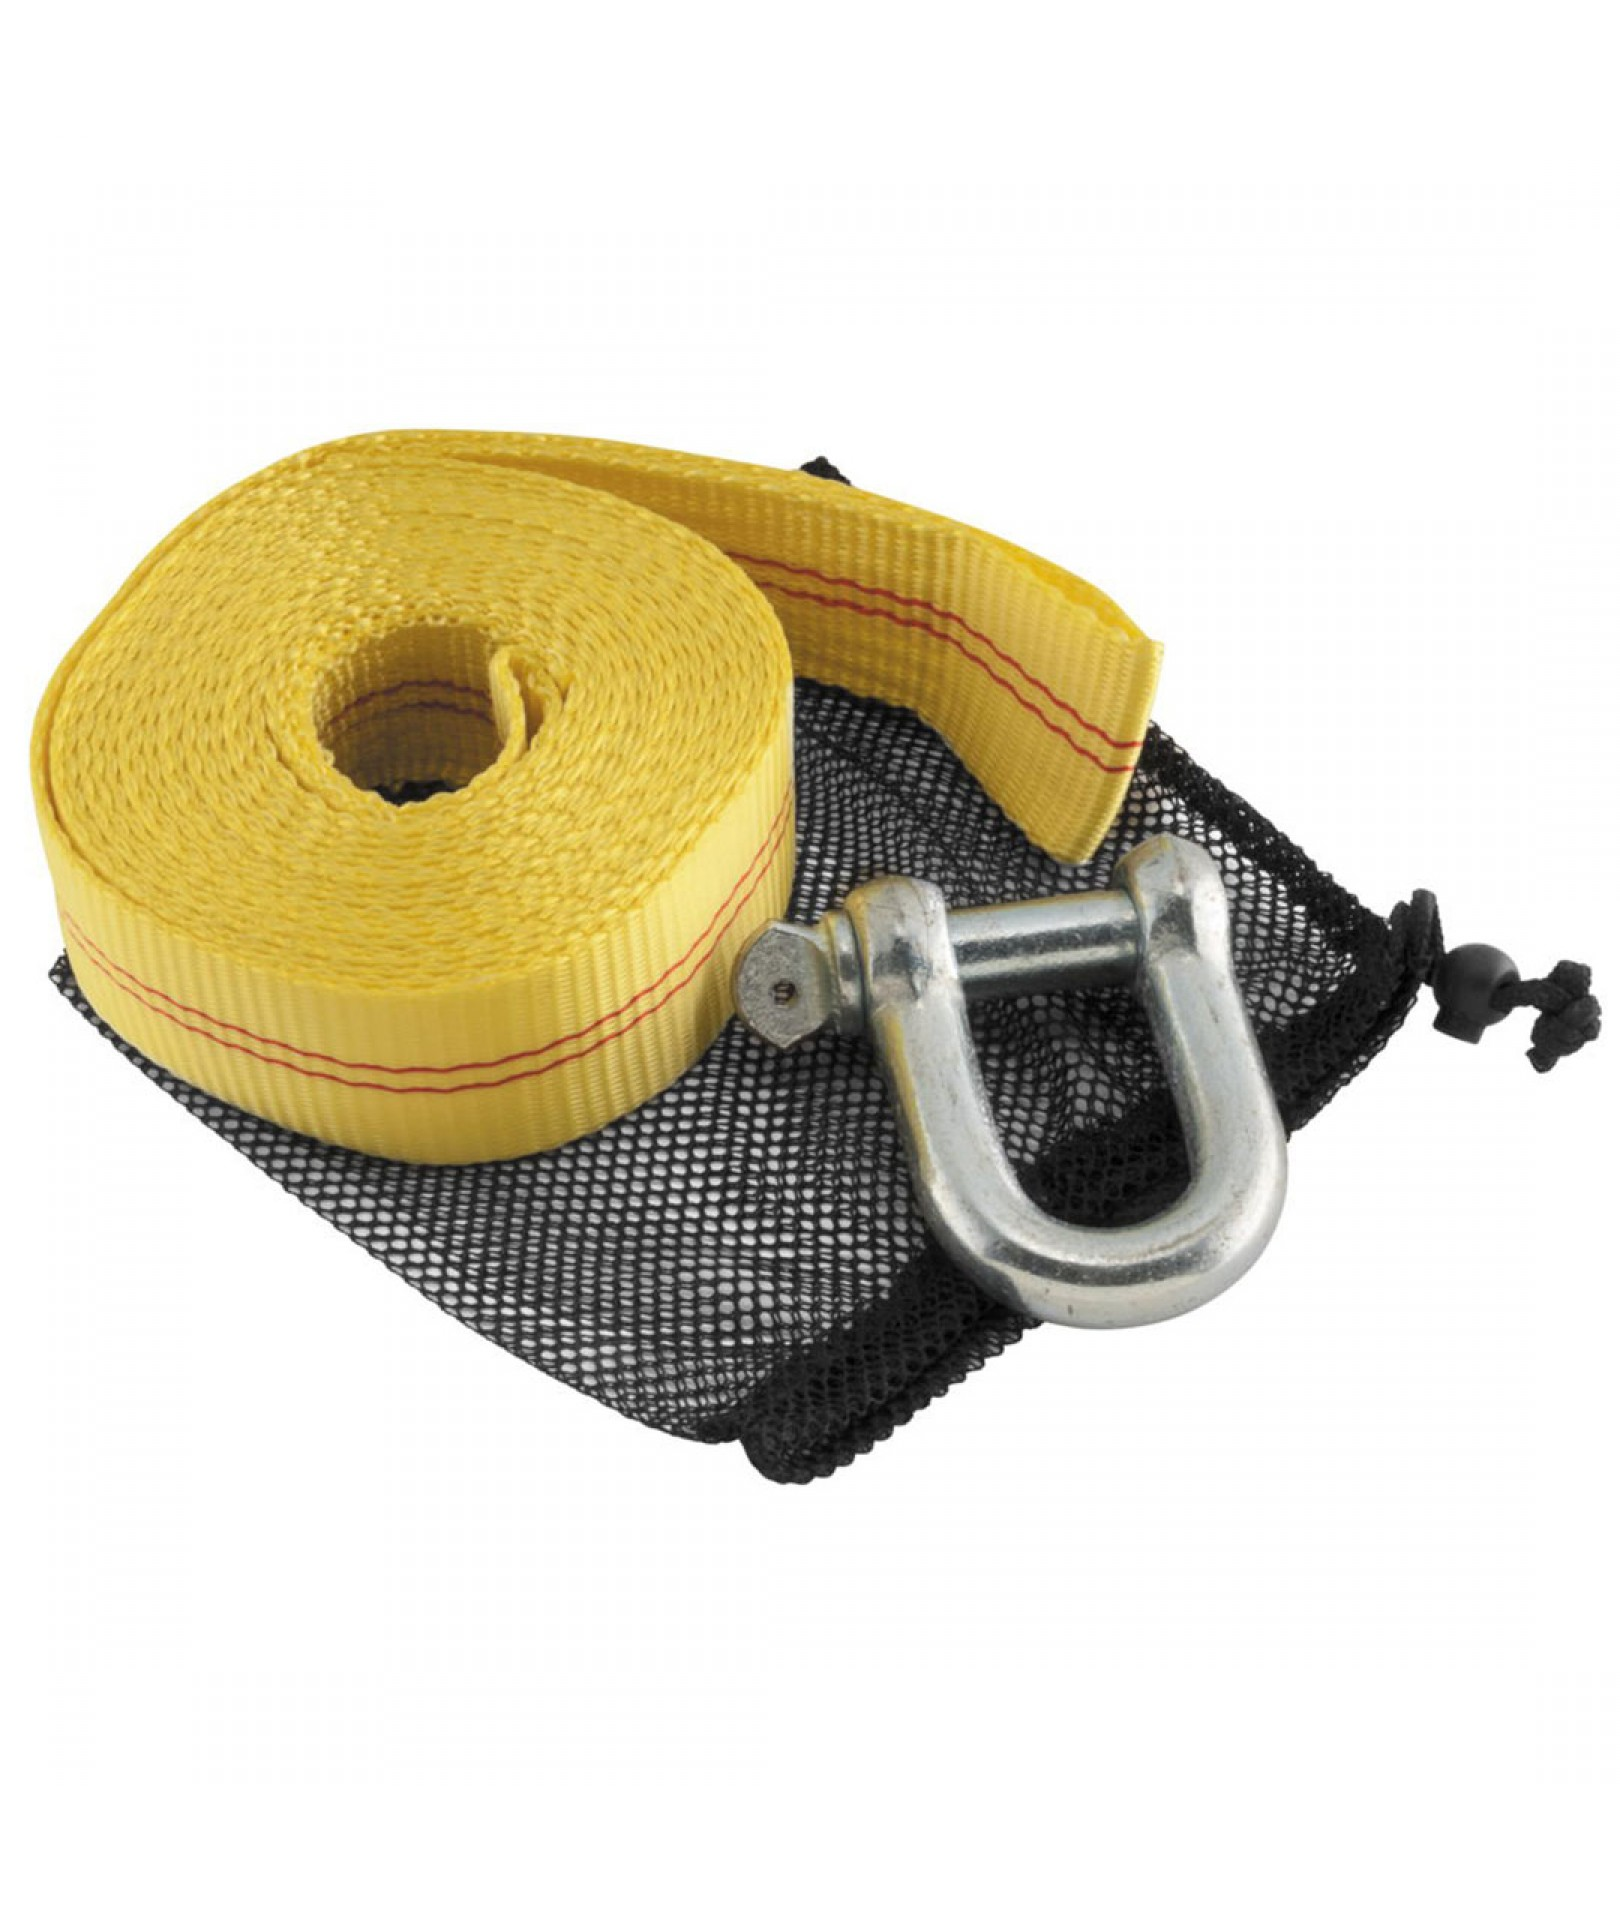 Dozer Tow Straps : Heavy duty tow strap straps equipment products